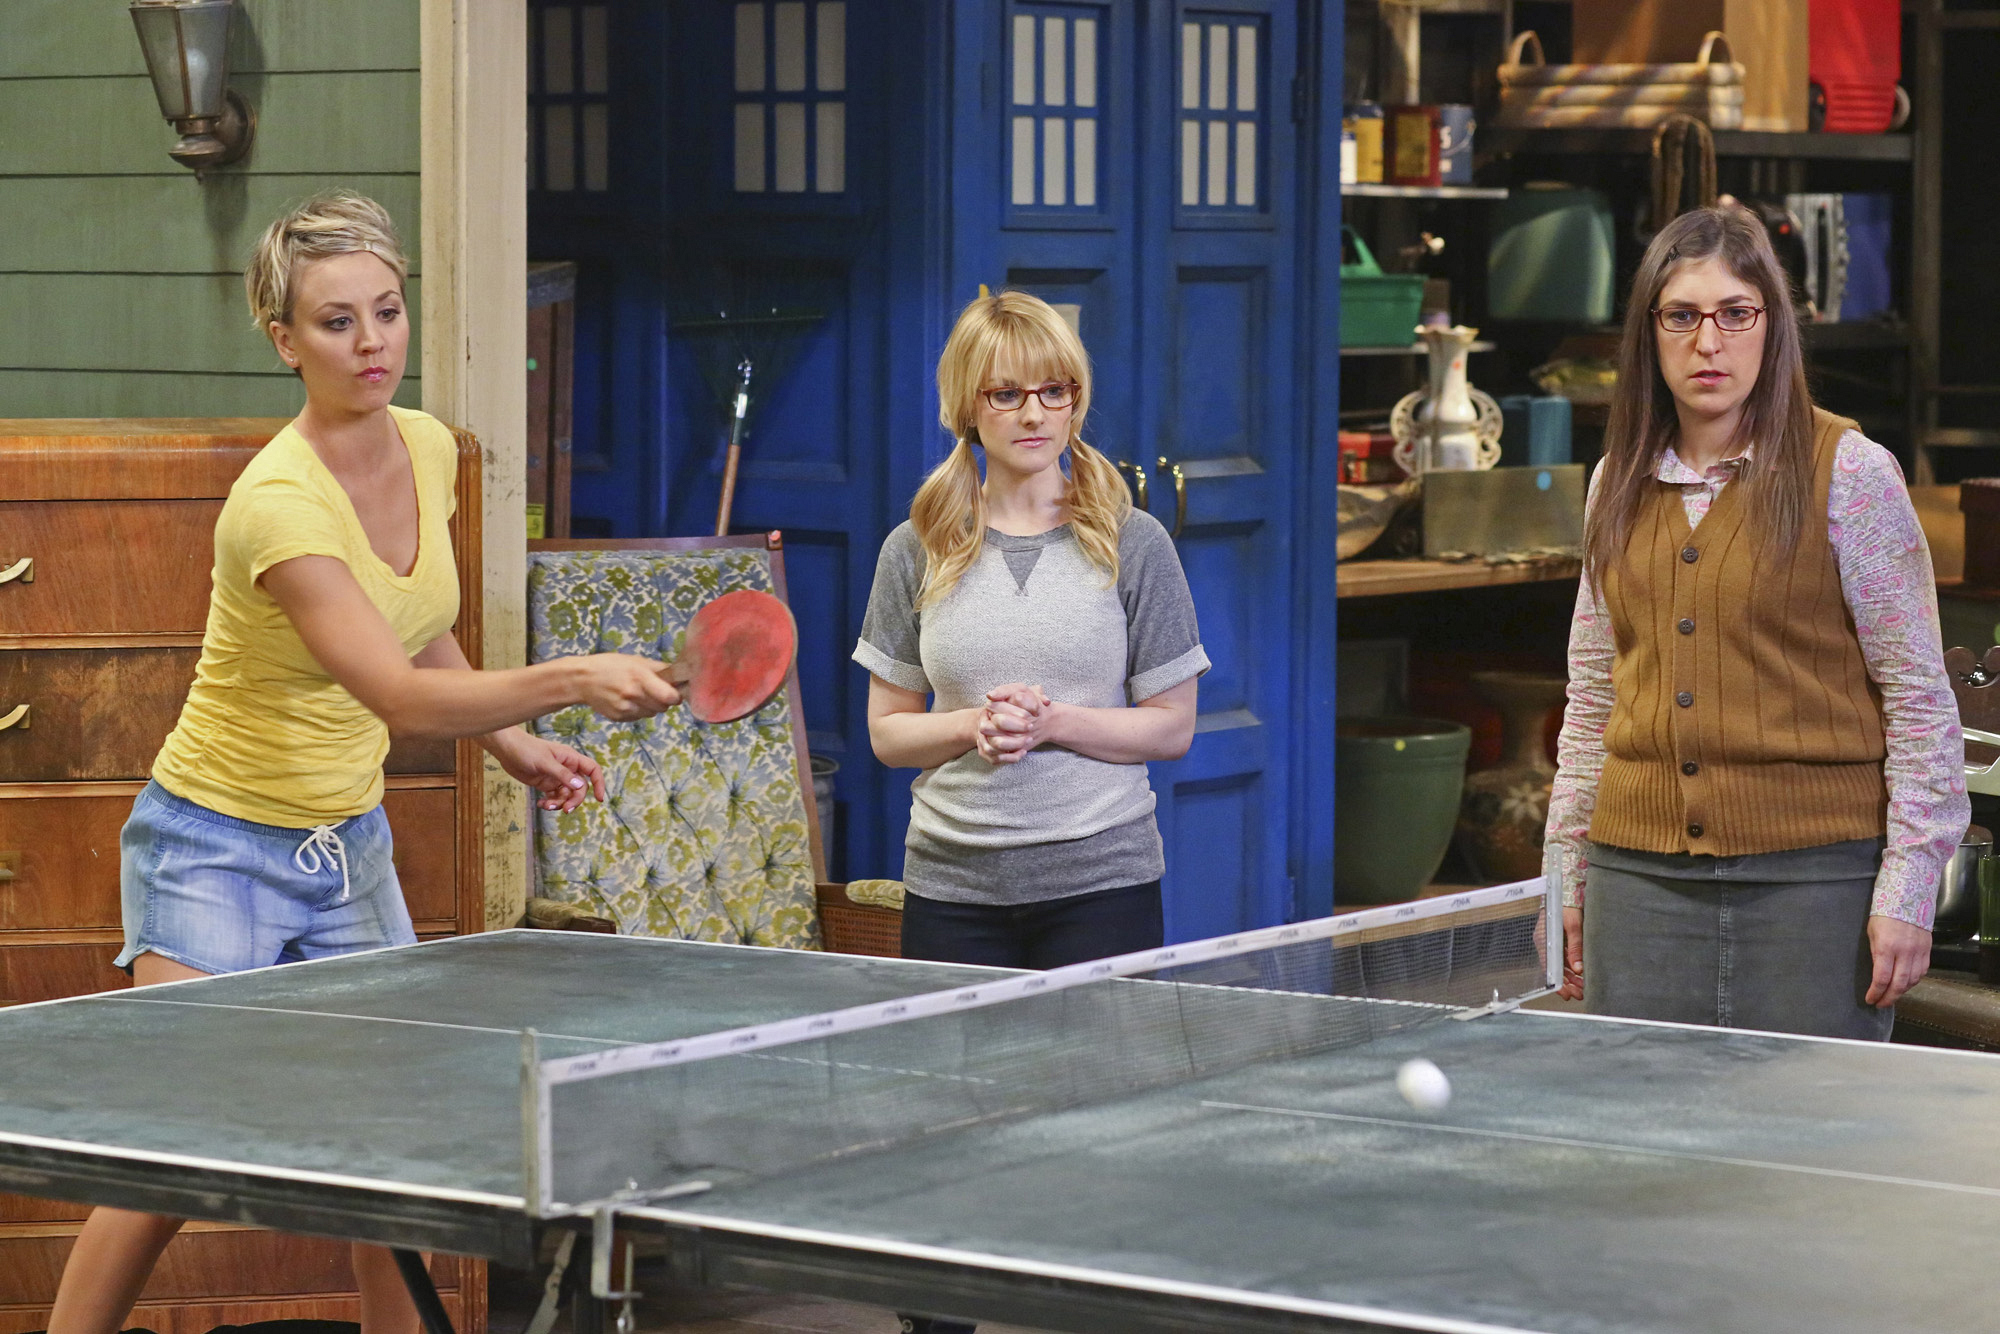 Just three ladies and a ping pong table